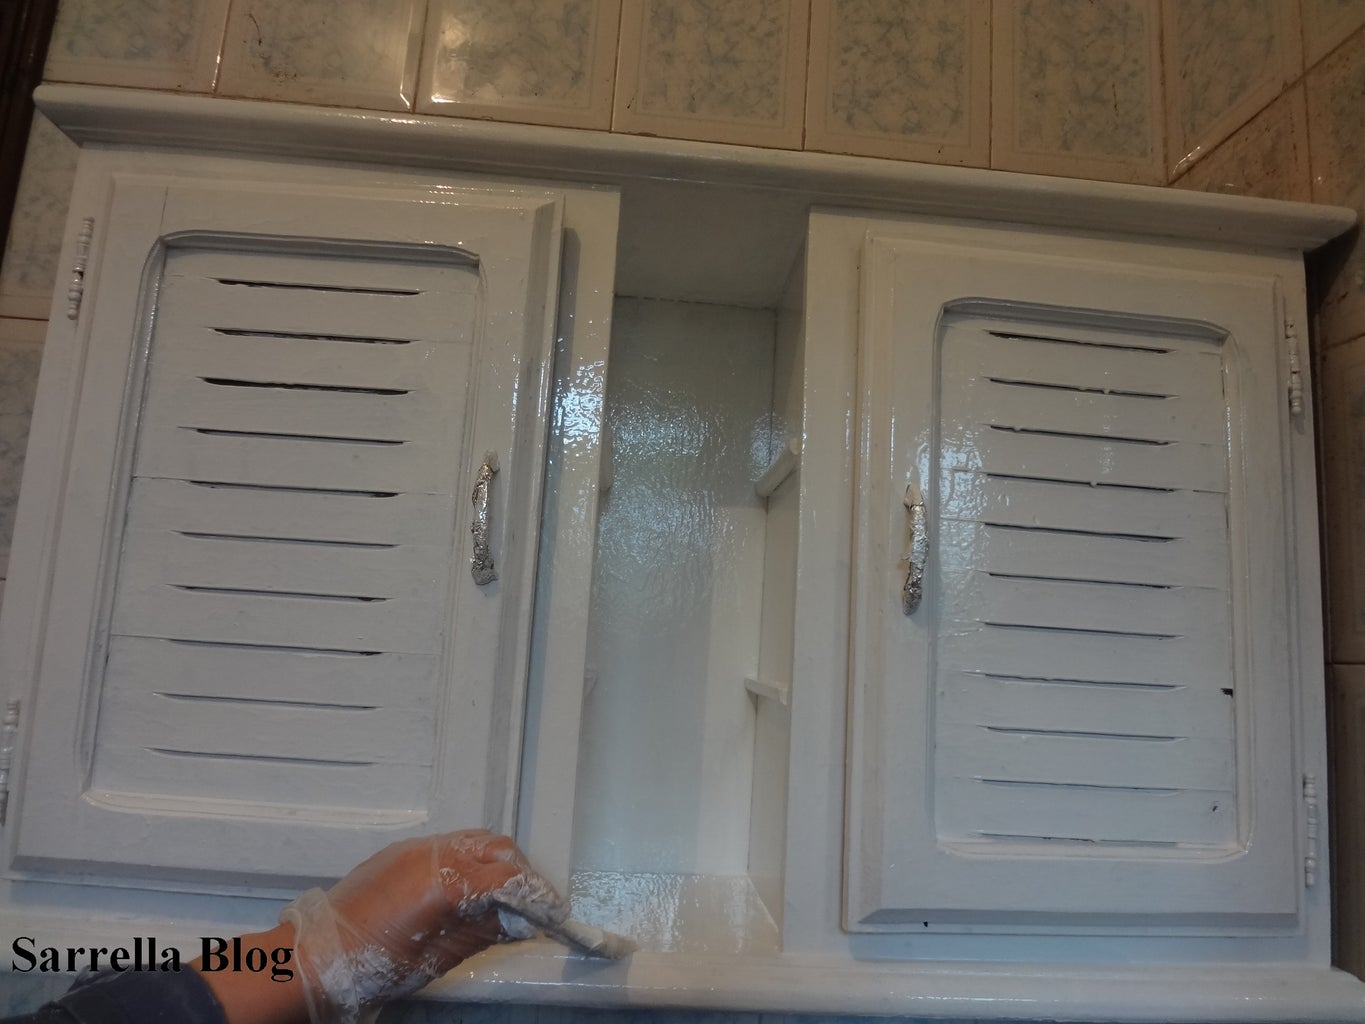 Painting the Cabinet